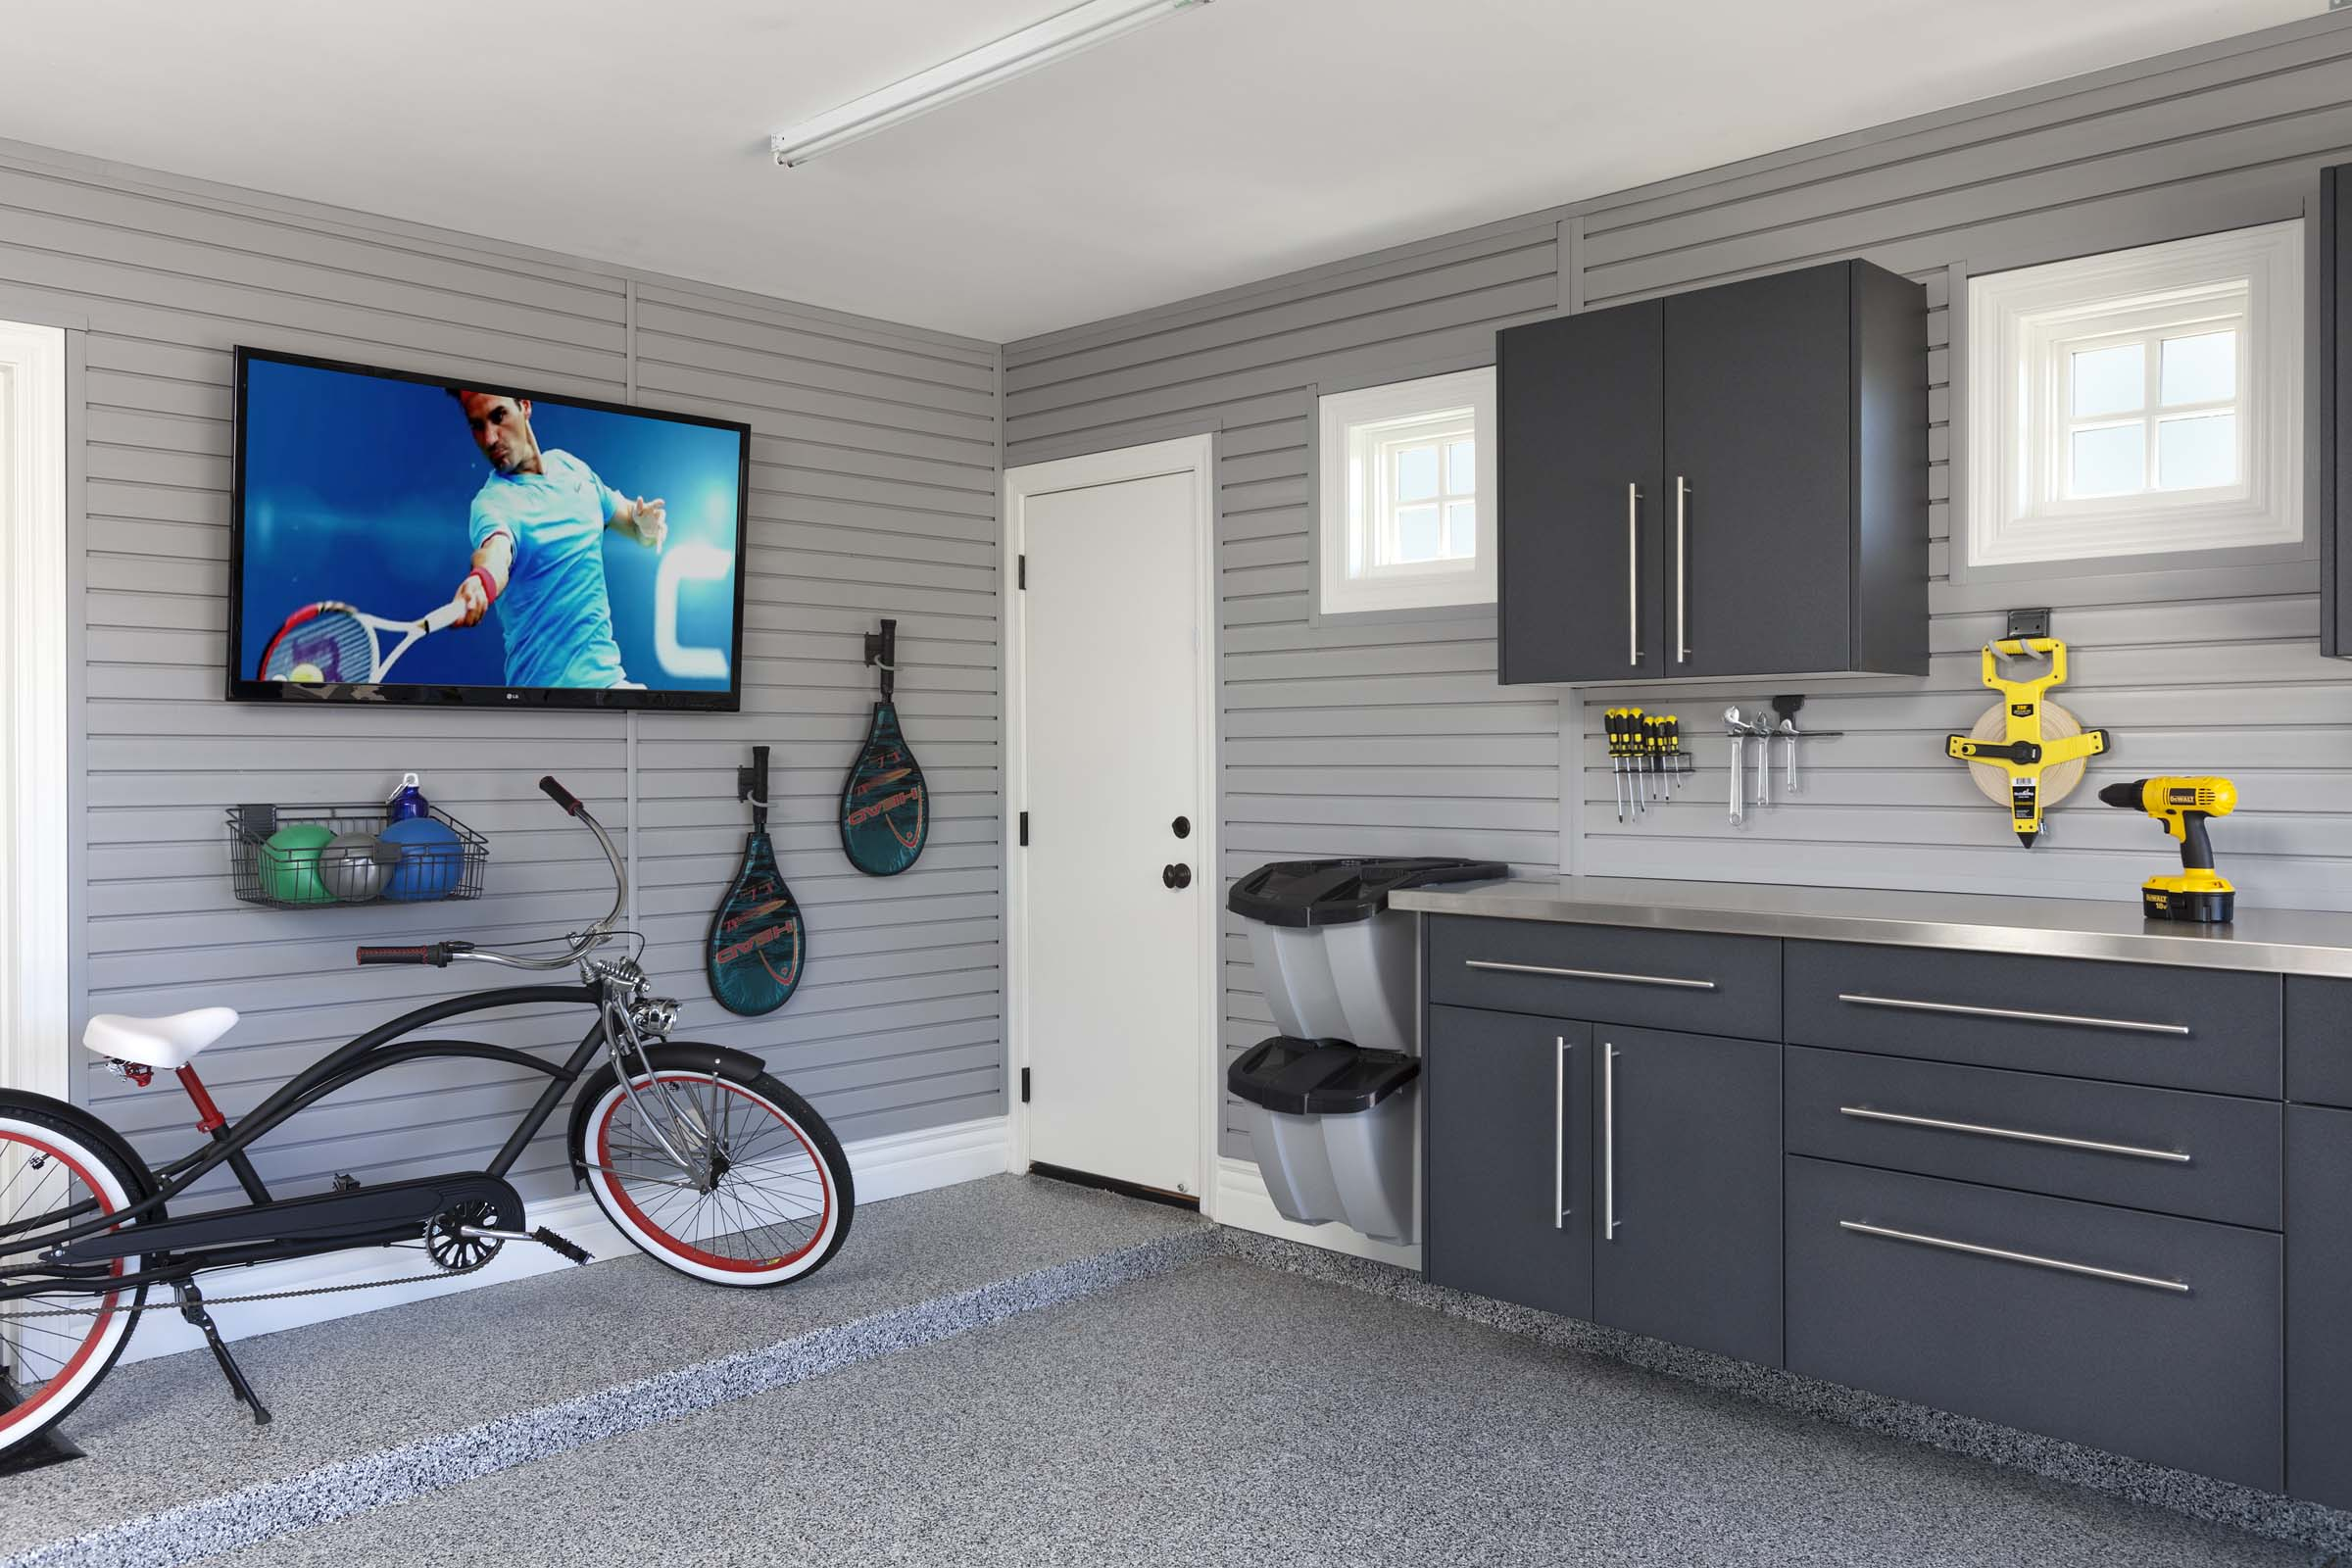 Wall mounted cabinets, upgraded drawer hardware and stainless countertops make this garage feel like another room in the house. Continuous slatwall panels maximize convenience and keep clutter at bay.  Call Closets of Tulsa  now for your FREE consultation and 3-D garage design:  918.609.0214